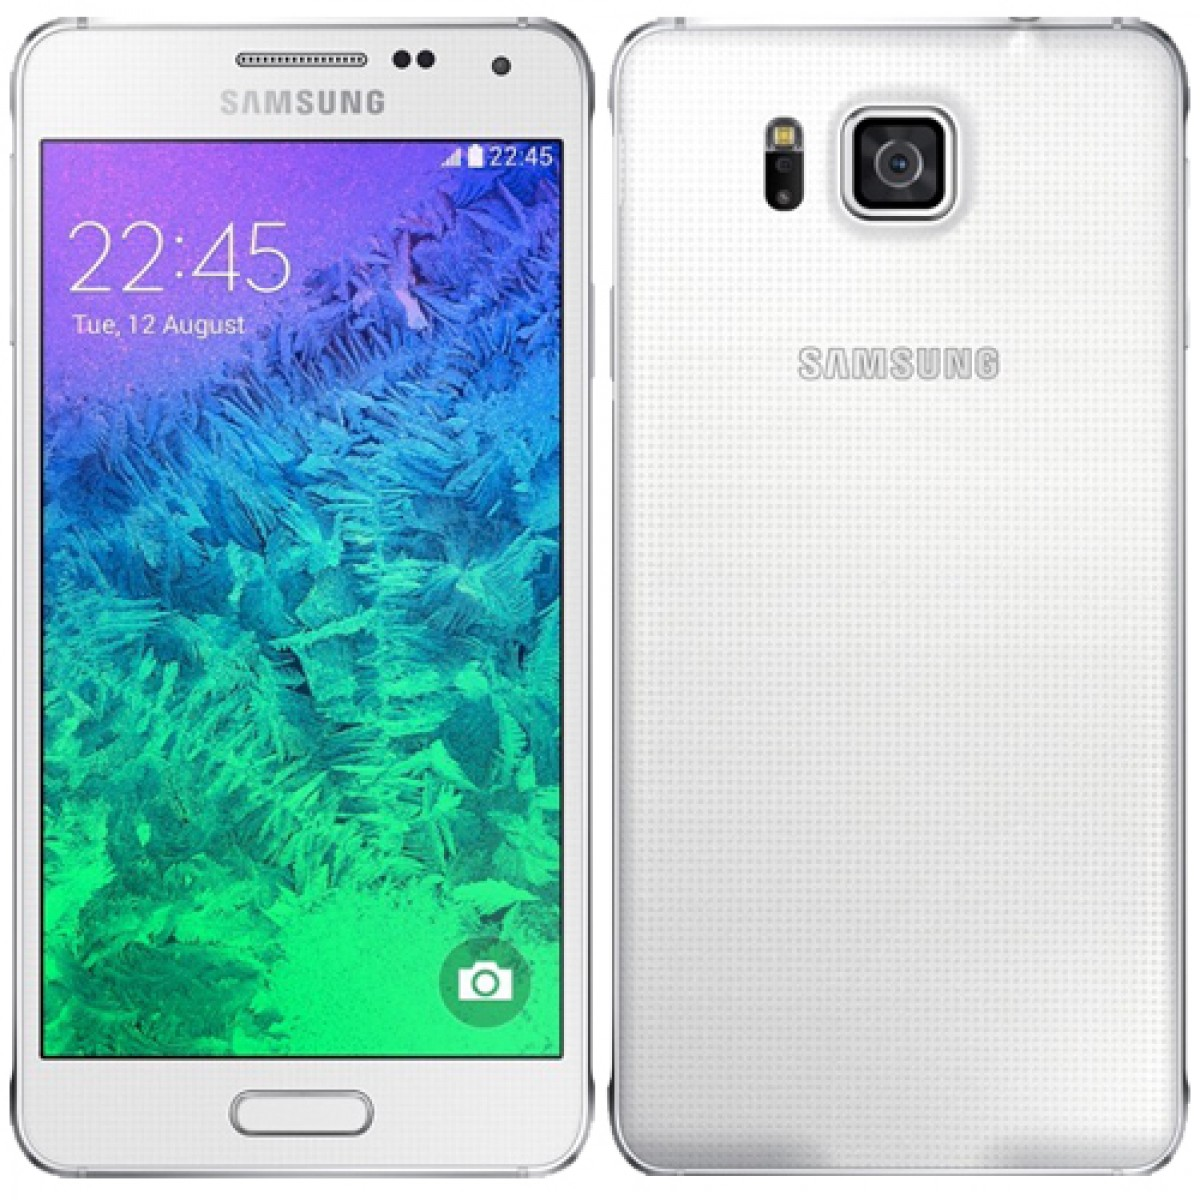 Iphone 7 Plus Case Airskin furthermore What Would 57 Inch Galaxy S6 Plus Mean Samsung further Samsung Galaxy Tab Active Holders further 171444653801 likewise Samsung Galaxy Alpha Sm G850t Lte New Unlocked White. on samsung galaxy alpha accessories